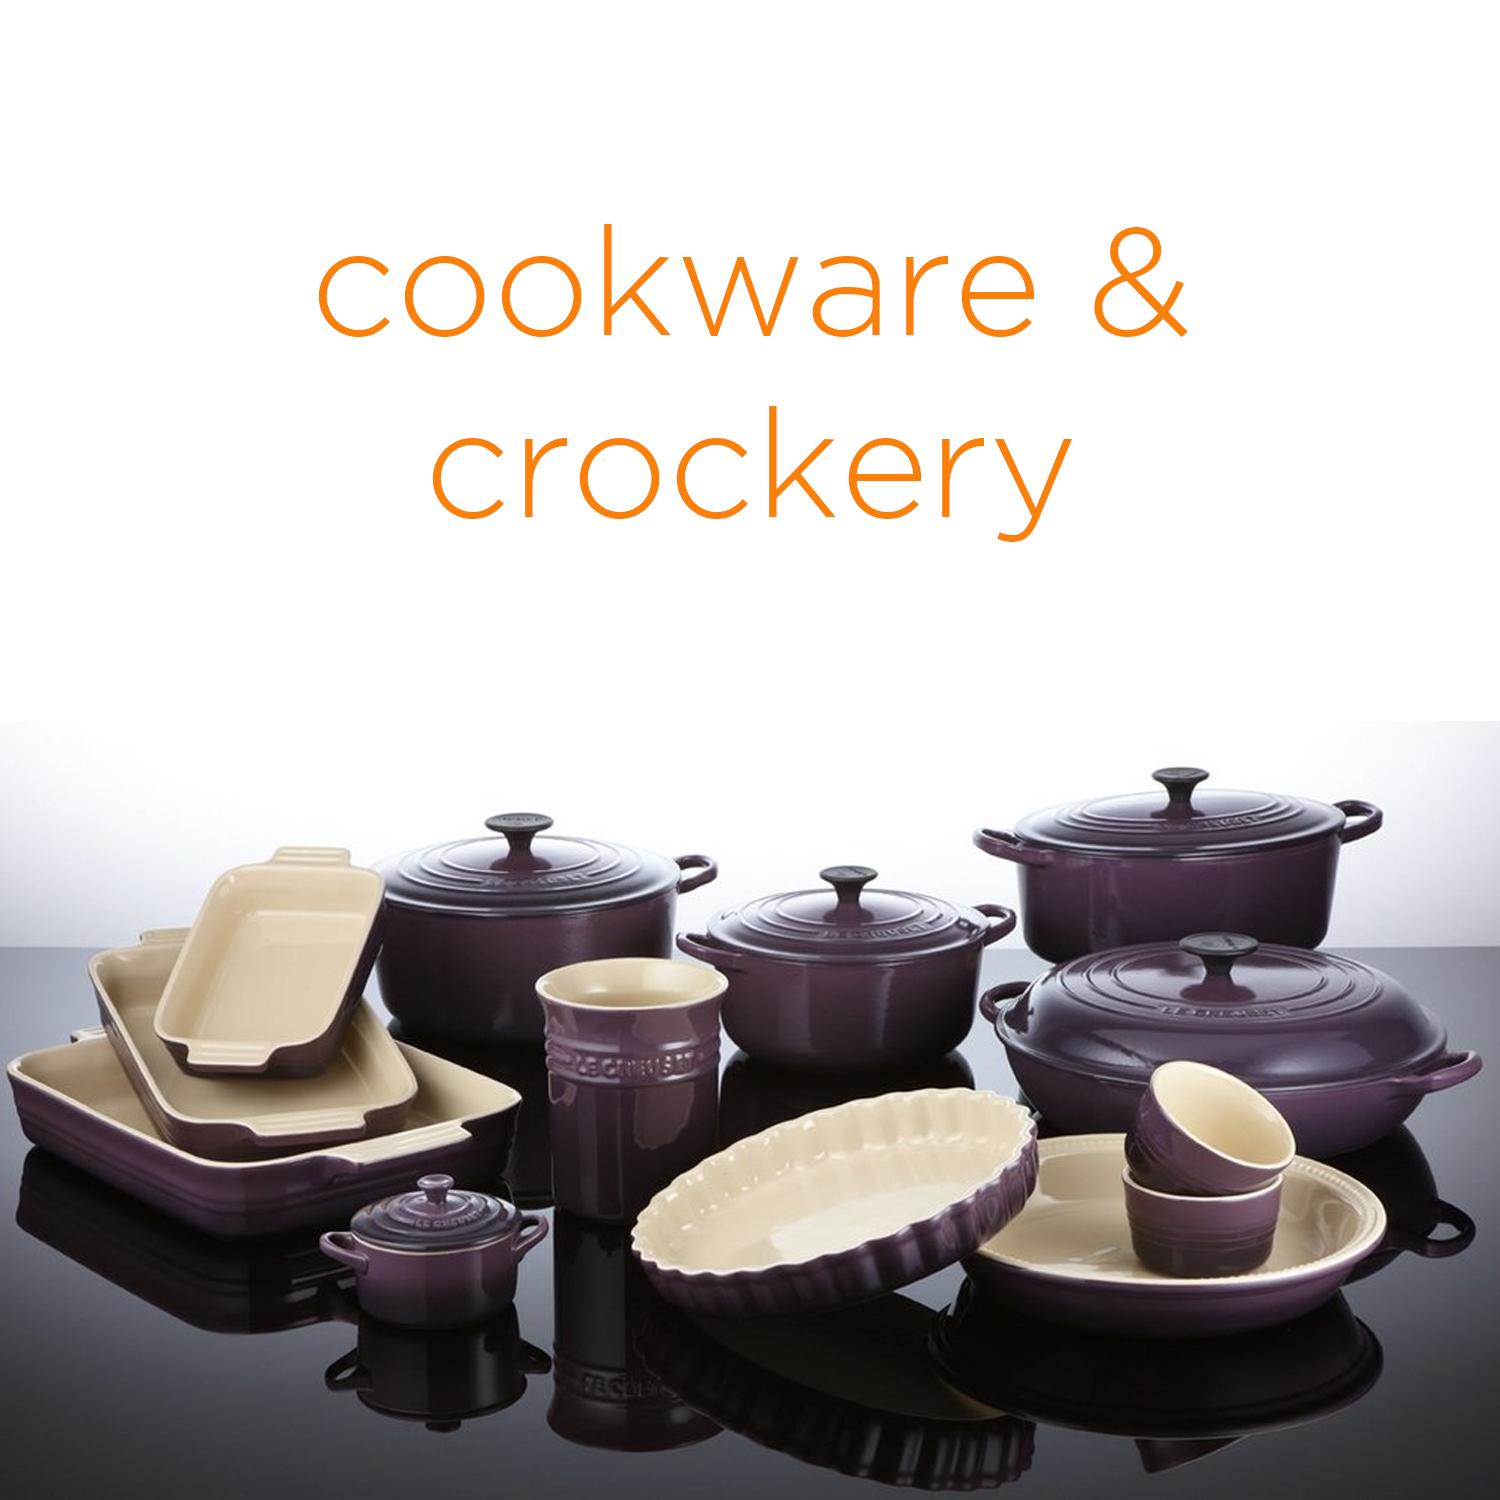 cookware-and-crockery